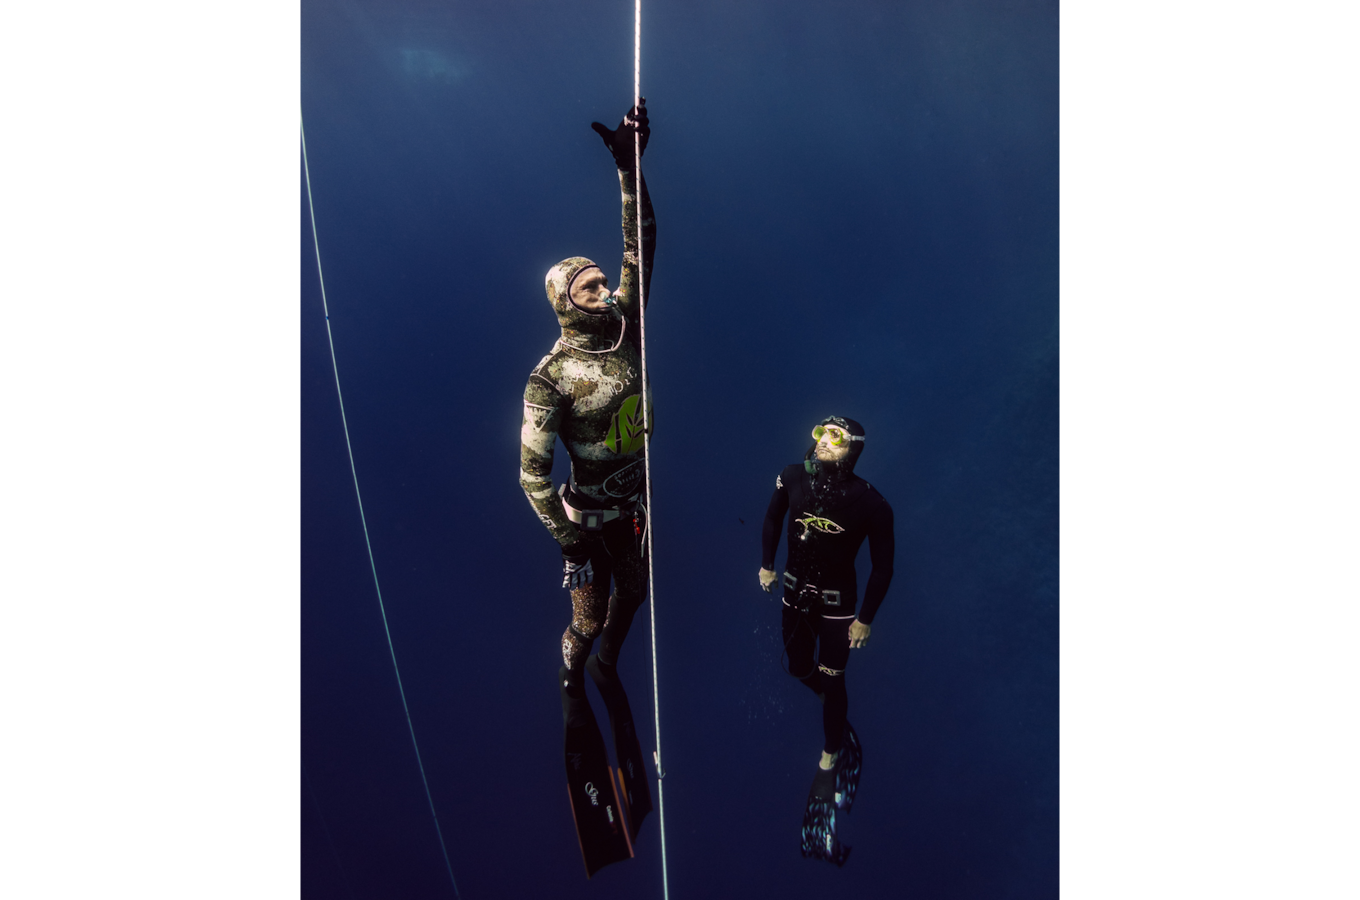 Danas-Macijauskas-sony-RX100M5-divers-preparing-to-rise-to-surface